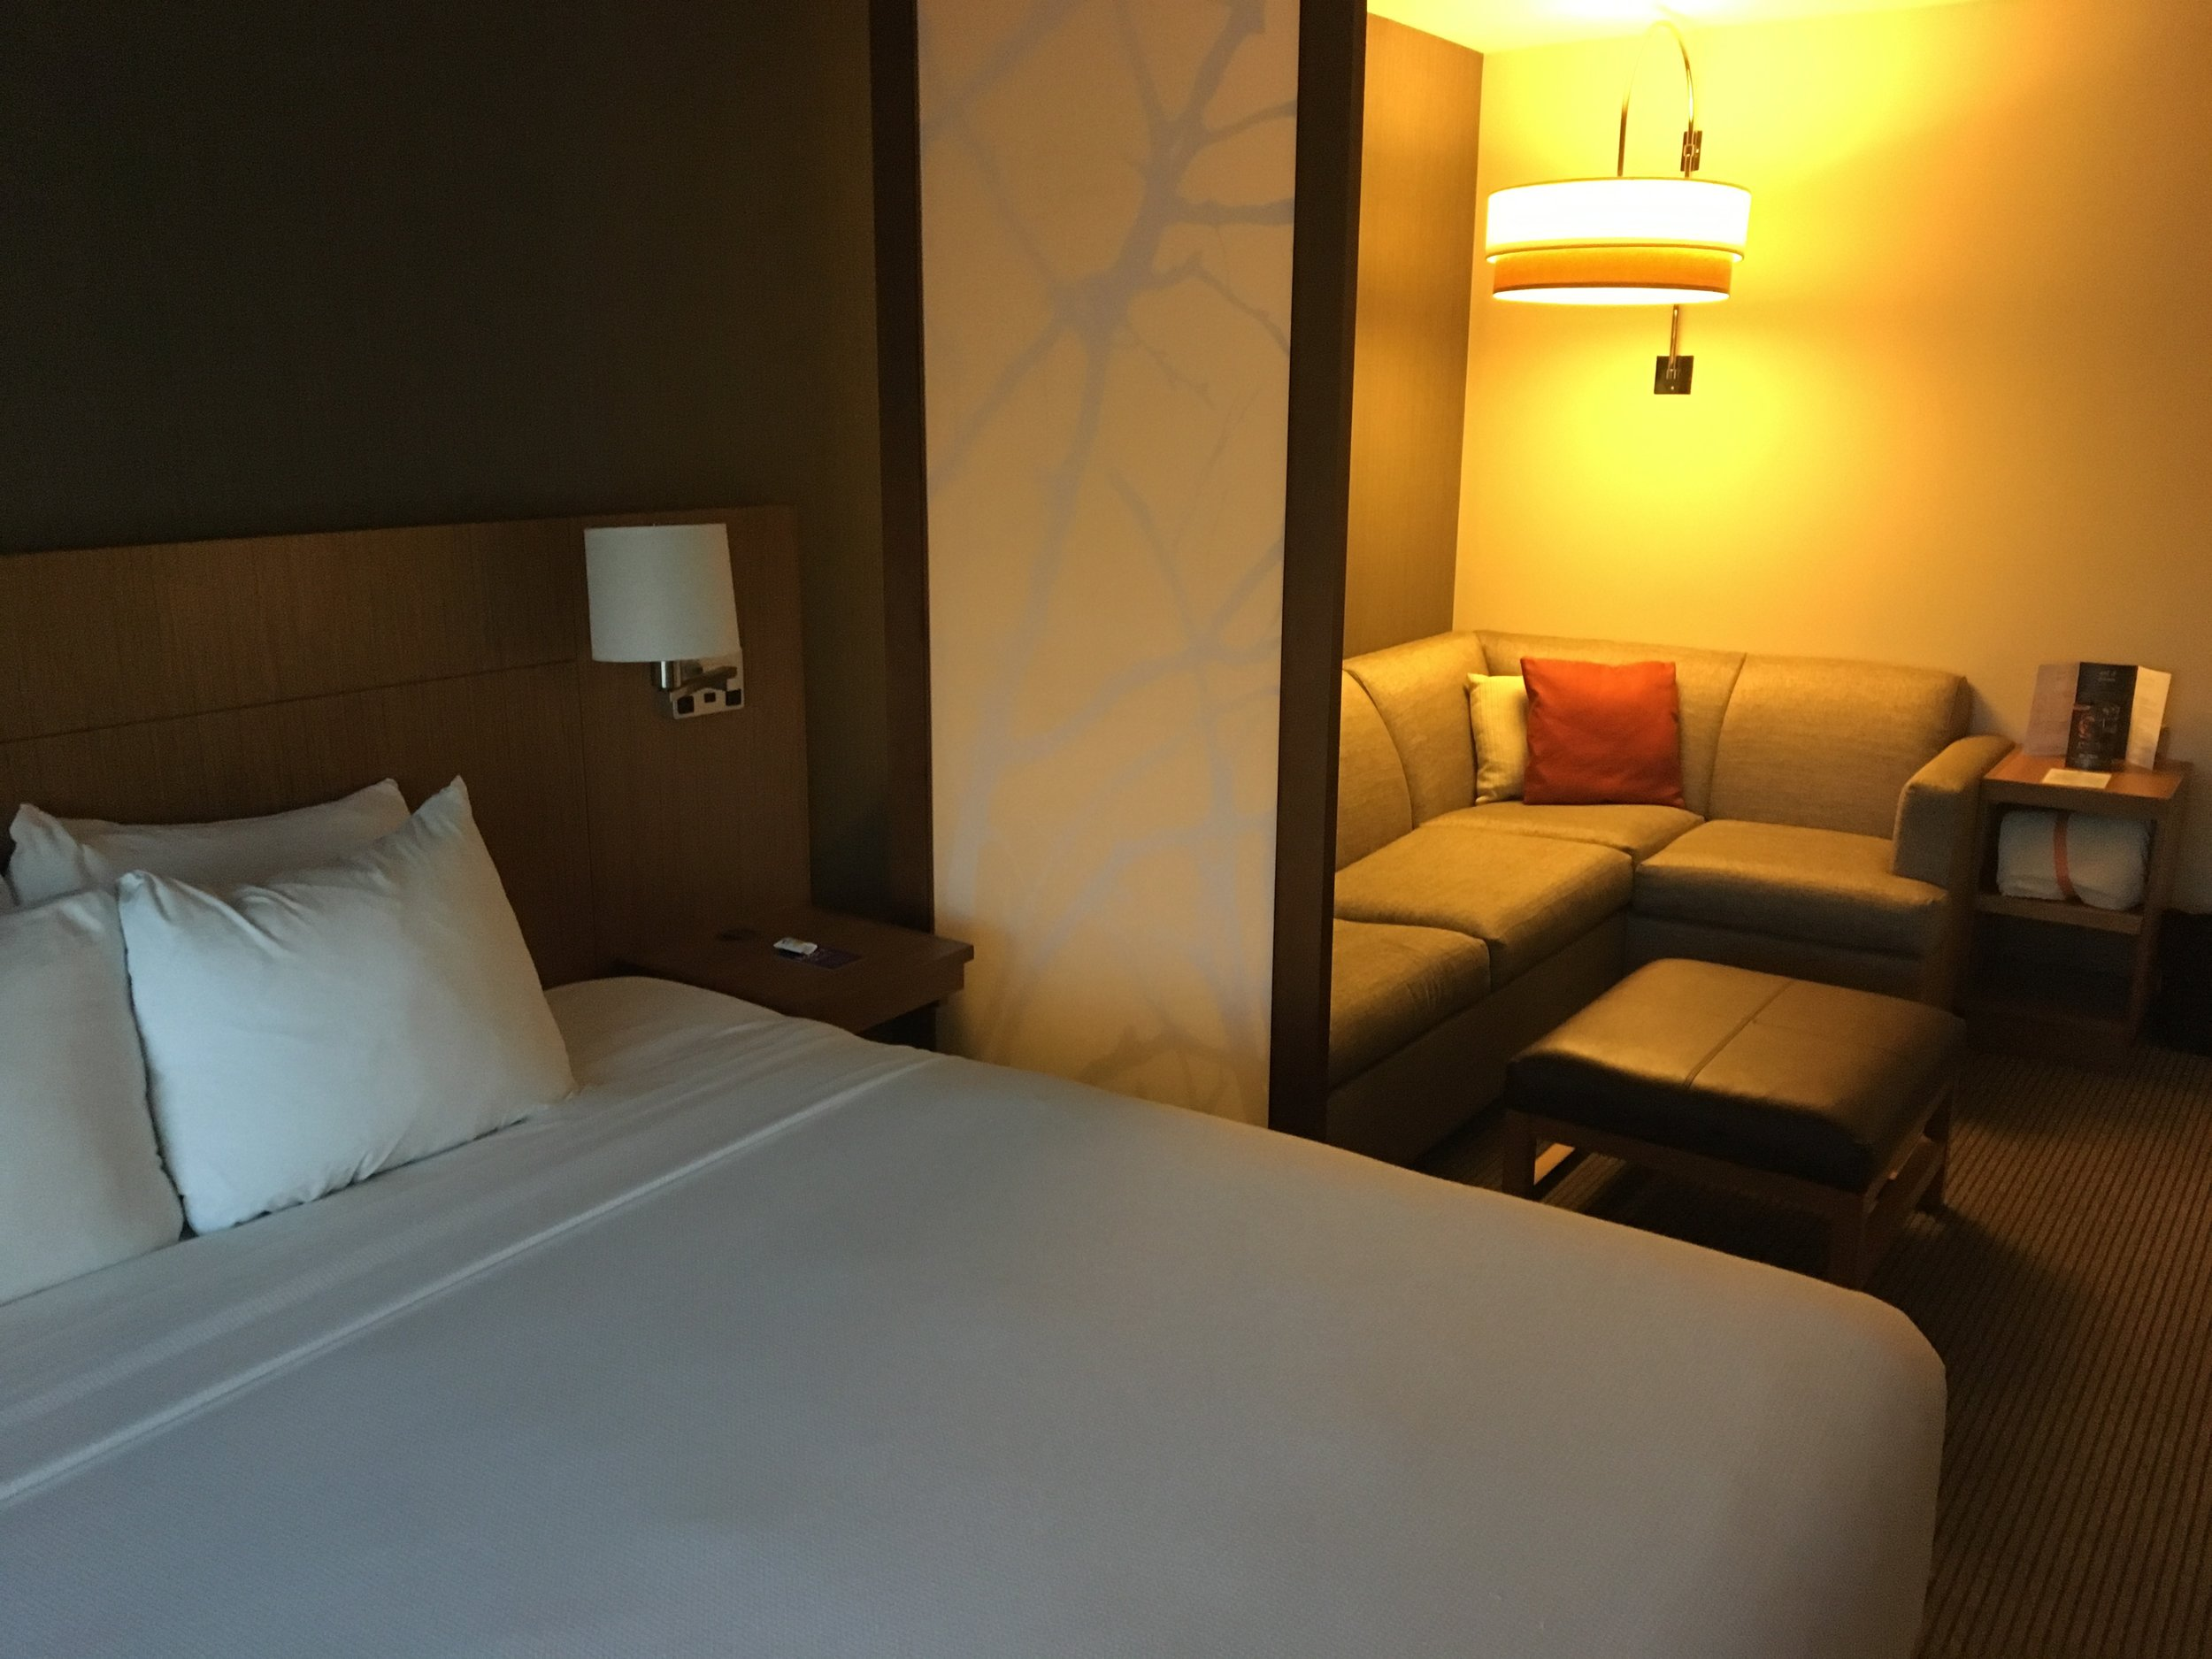 NEXT TIME YOU'RE IN LINCOLN, NEBRASKA CHECK OUT THEIR HYATT PLACE